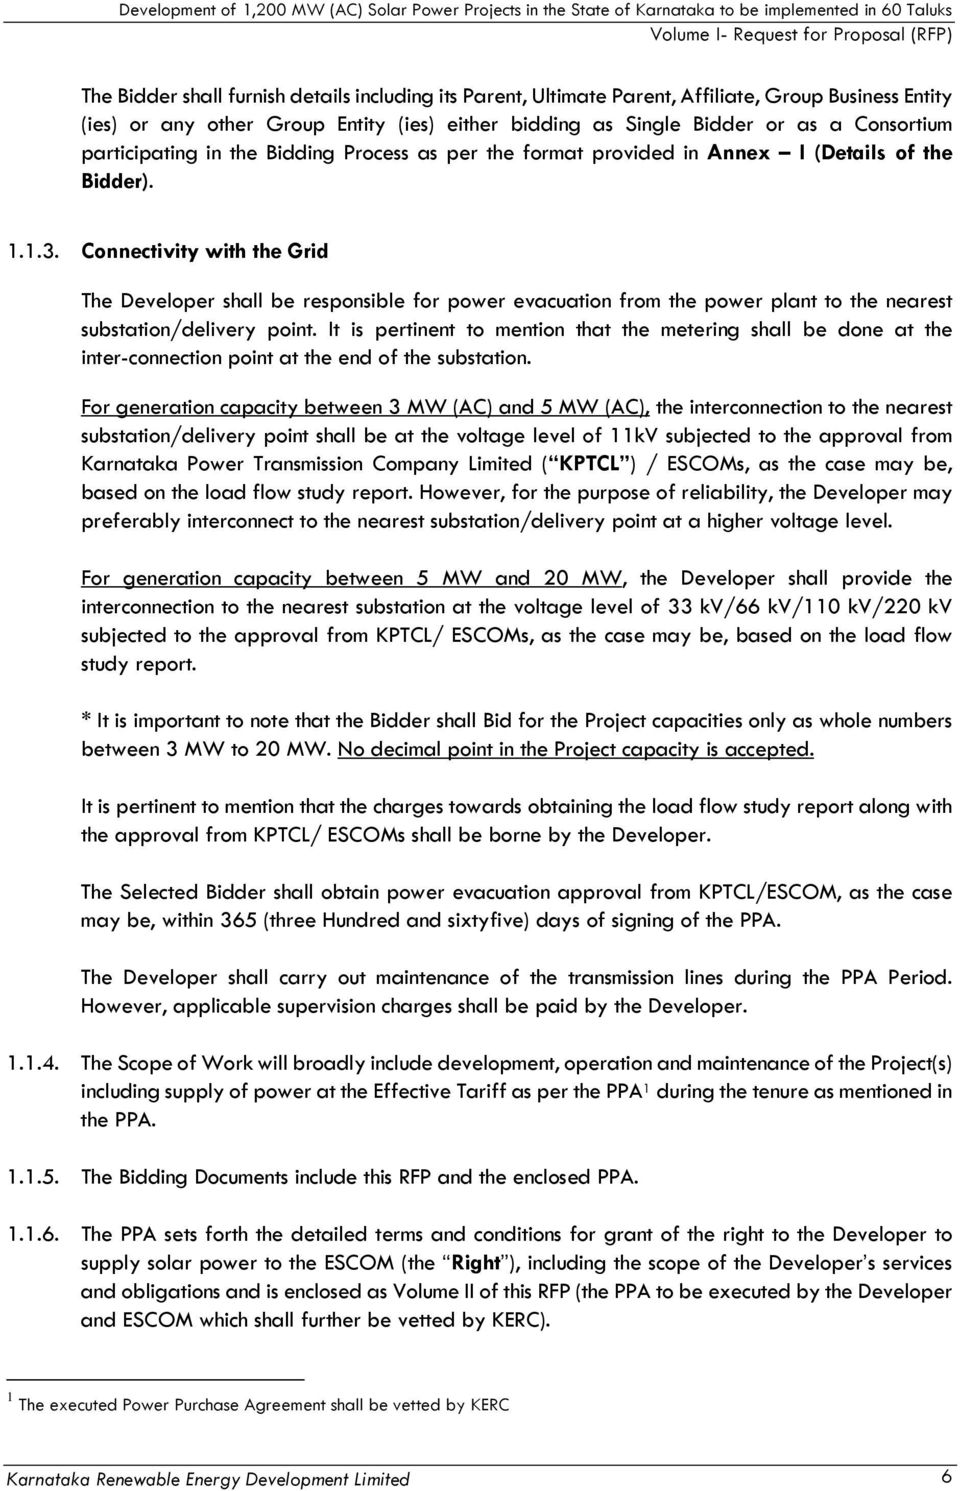 Request for Proposal DEVELOPMENT OF 1,200 MW (AC) SOLAR POWER